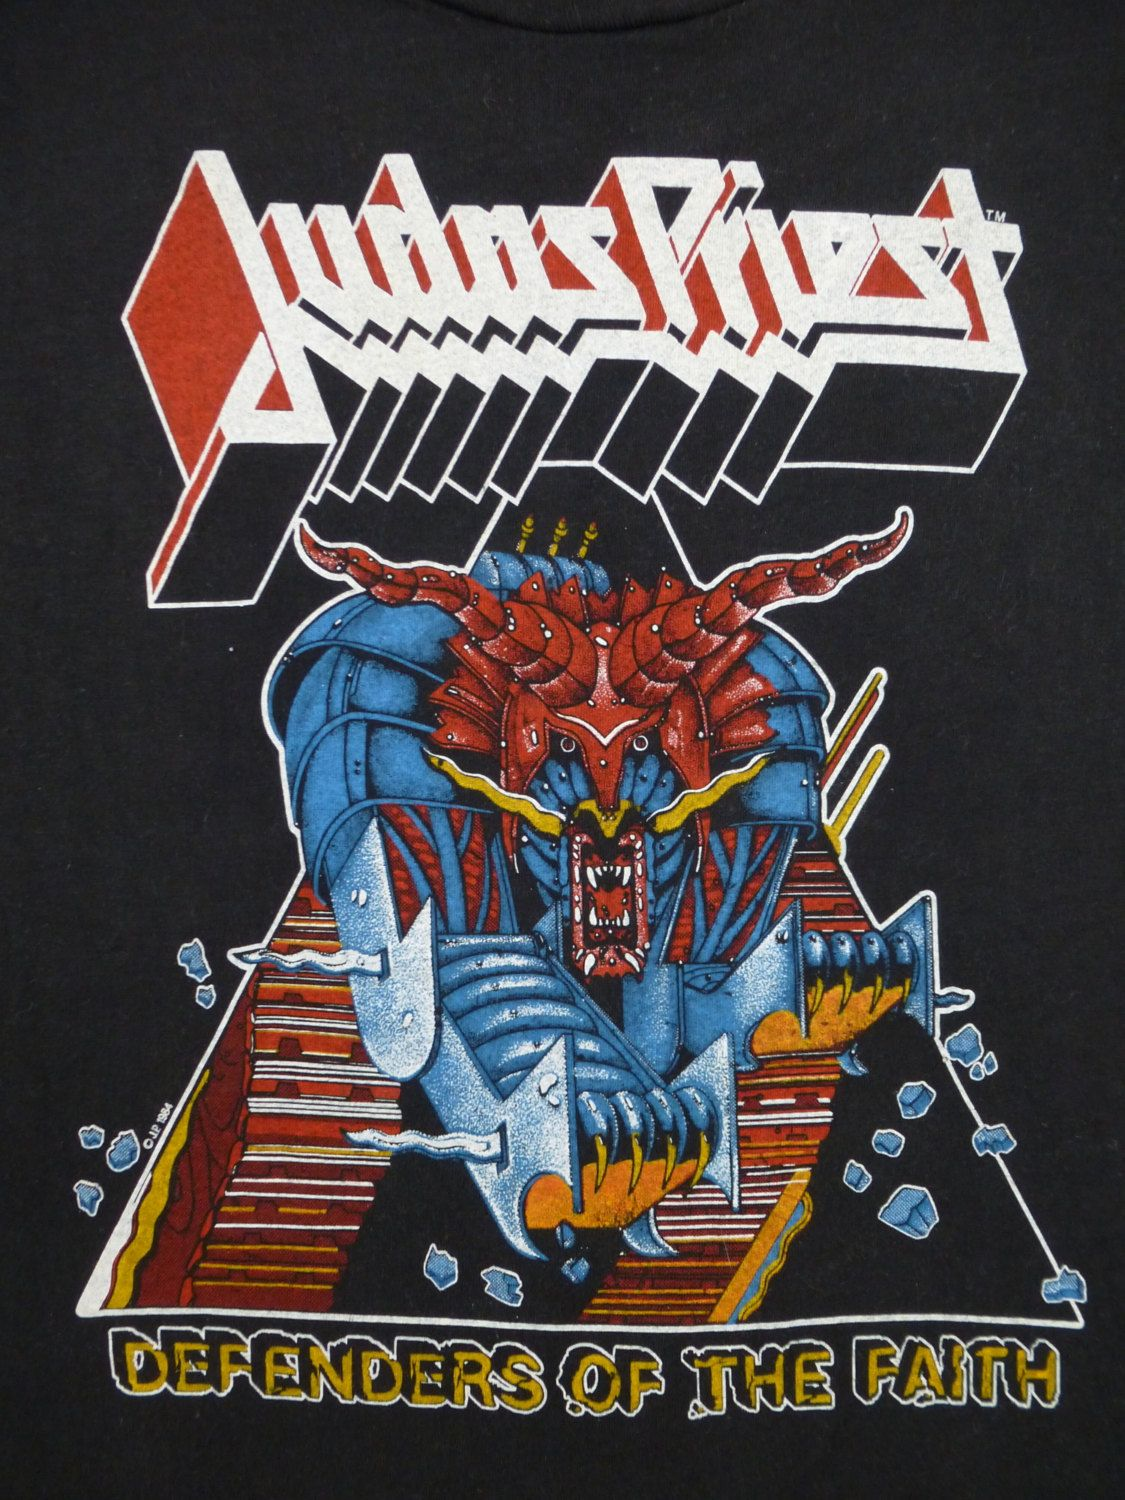 Judas Priest Vintage 1993 Tour Tshirt In 2018 Shirts Badly Drawn Short Circuit Mens Buy Online At Grindstore By Rainbowgasoline On Etsy